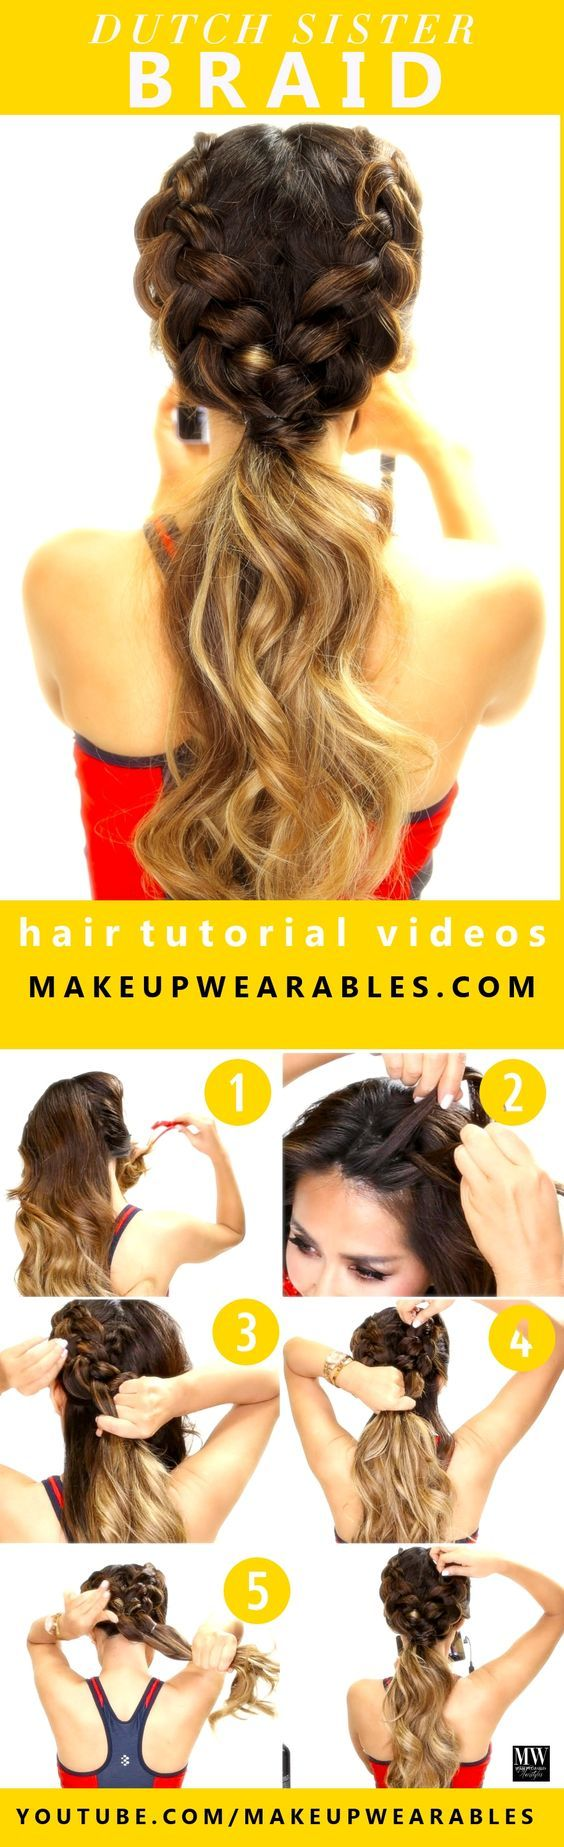 3 Cute Workout Gym Hairstyles with Braids | Hair Tutorial: